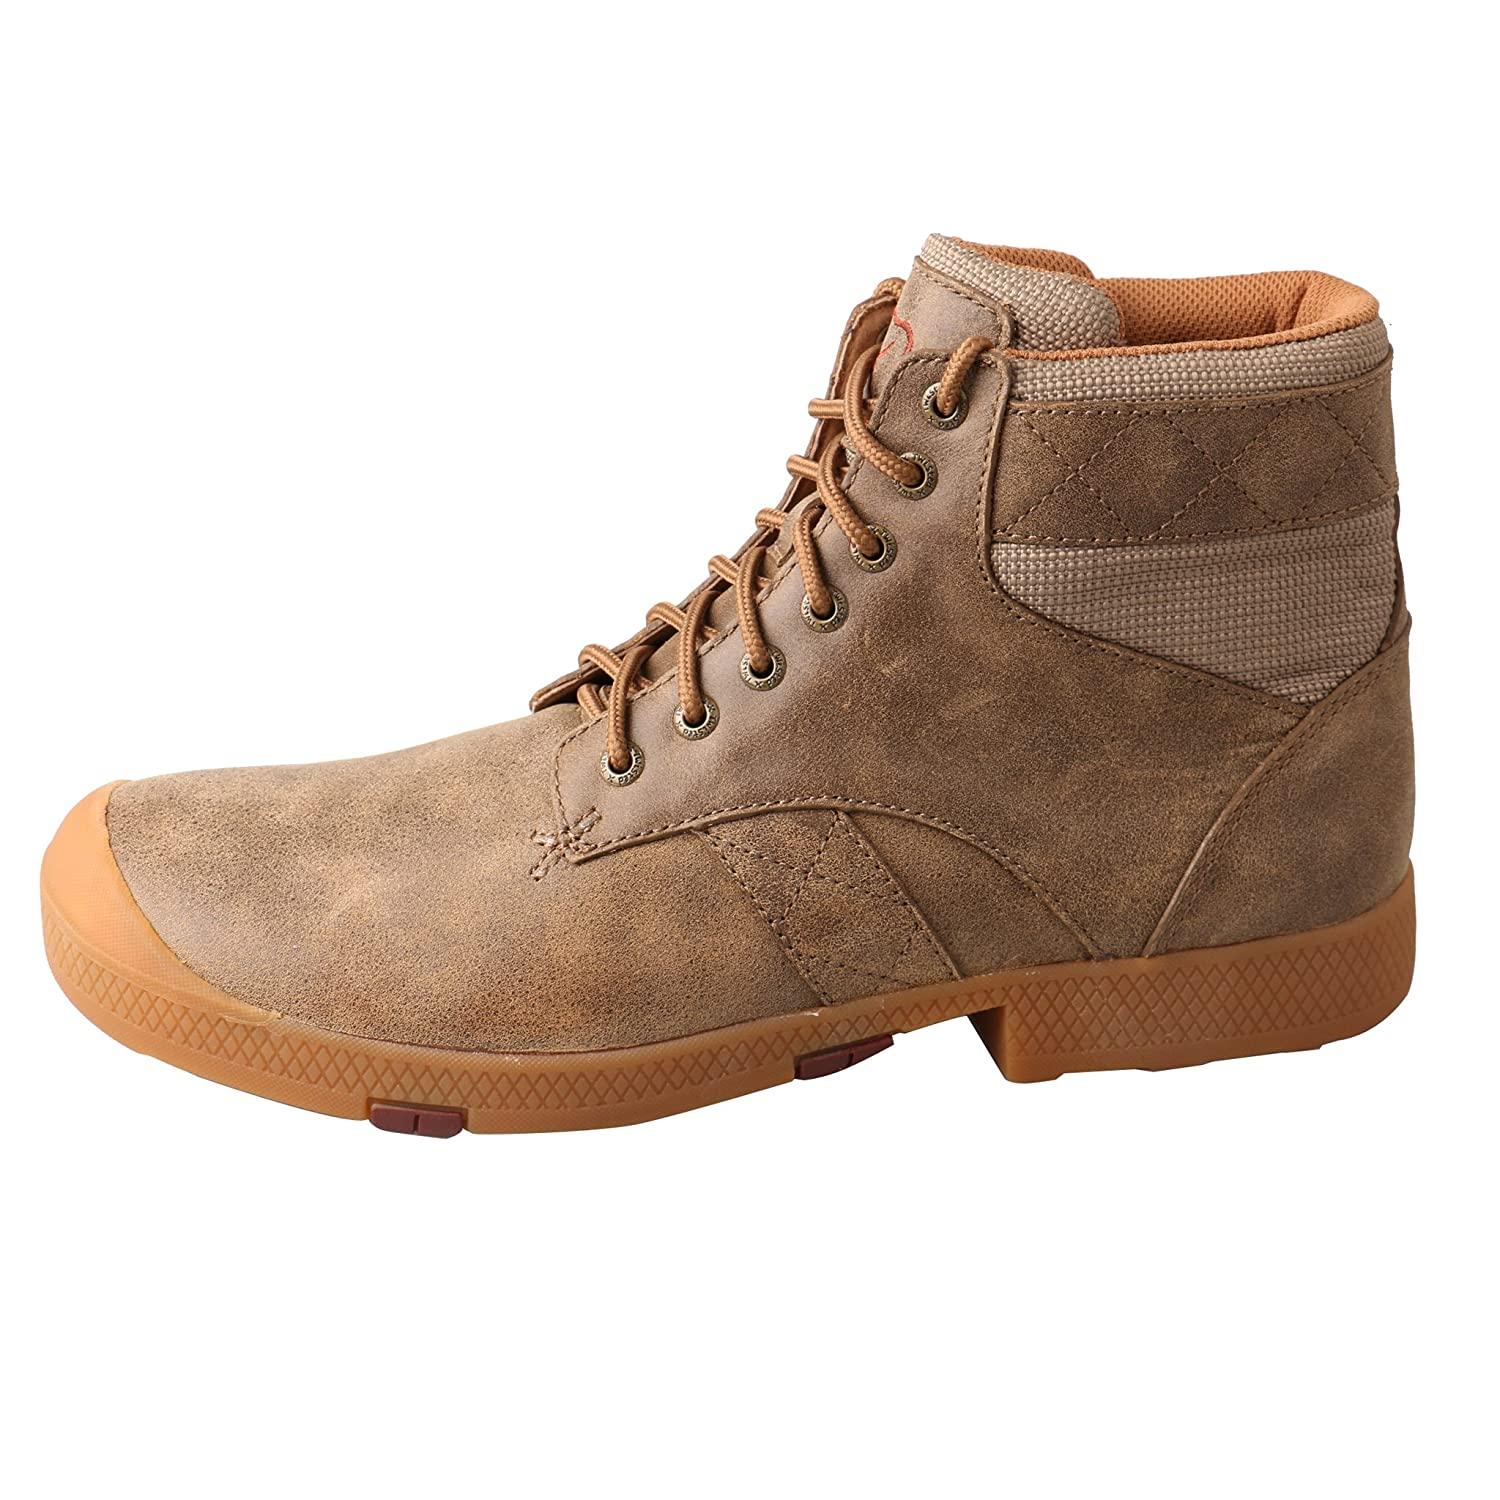 9f50c25d07de Amazon.com  Twisted X Men s Casual Lace-Up Boot Round Toe Bomber 11.5 EE  US  Clothing